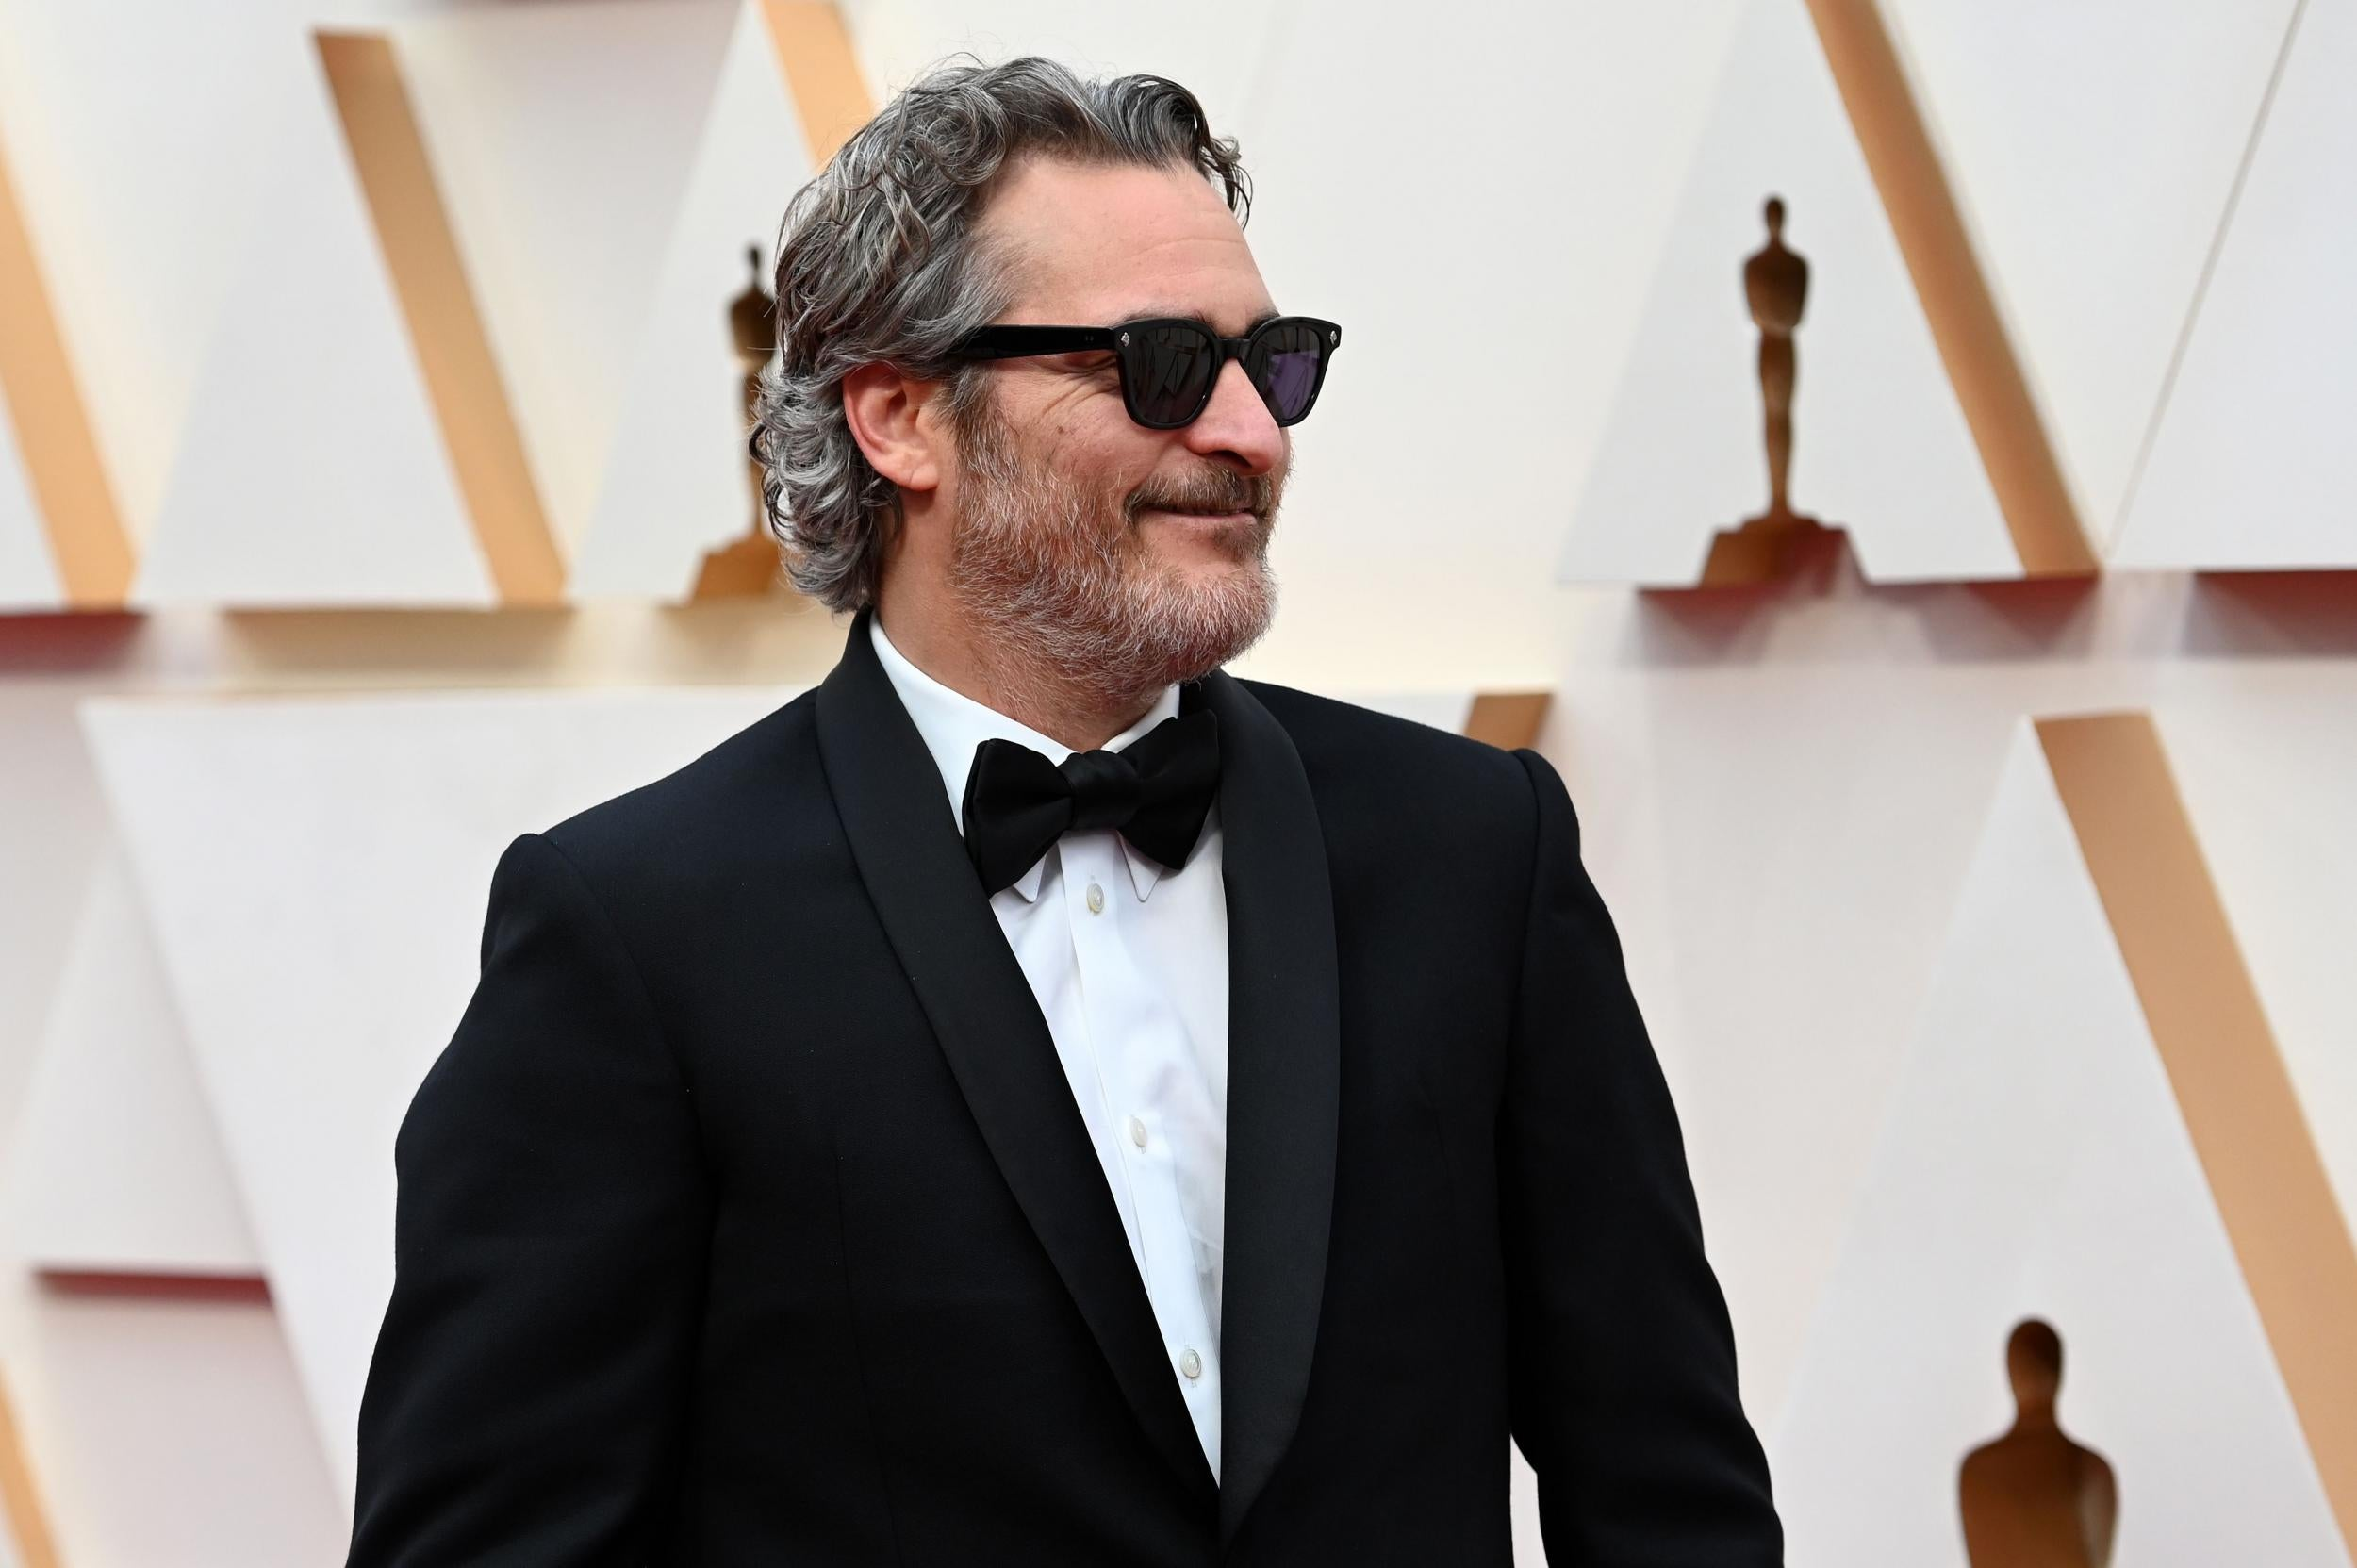 Joaquin Phoenix to produce new film about animal sentience